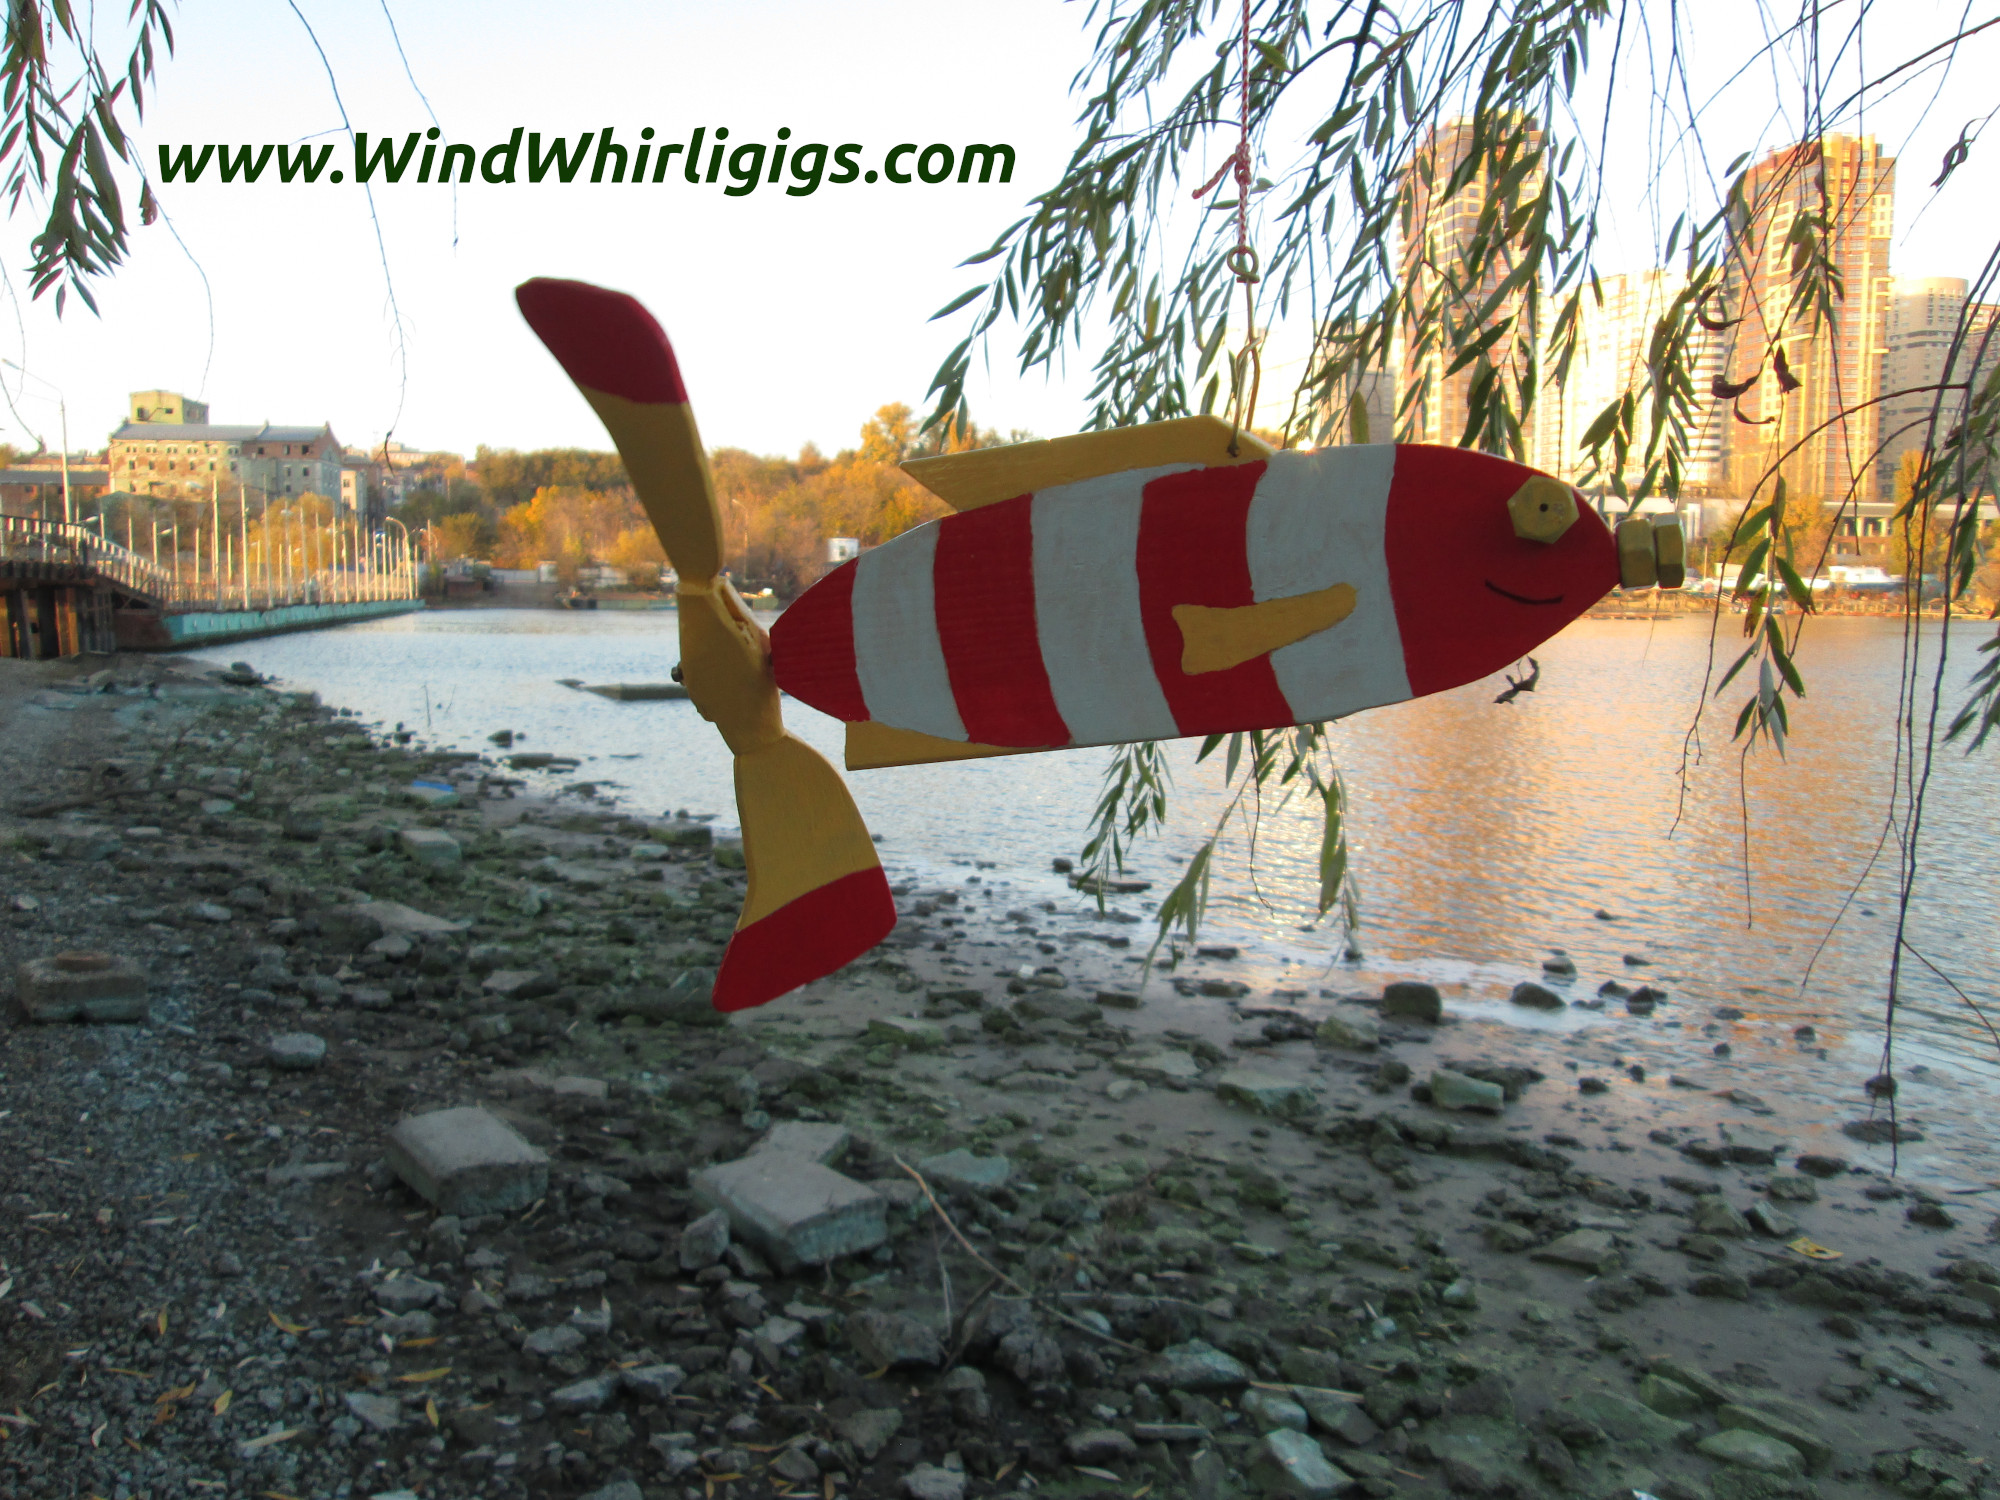 How To Make A Garden Decor Hanging Whirligig Red Striped Fish With Spinning Tail Photo Tutorial 100 Images Www Windwhirligigs Com Handmade Modern And Old Fashioned Mechanical Whirligigs For Sale